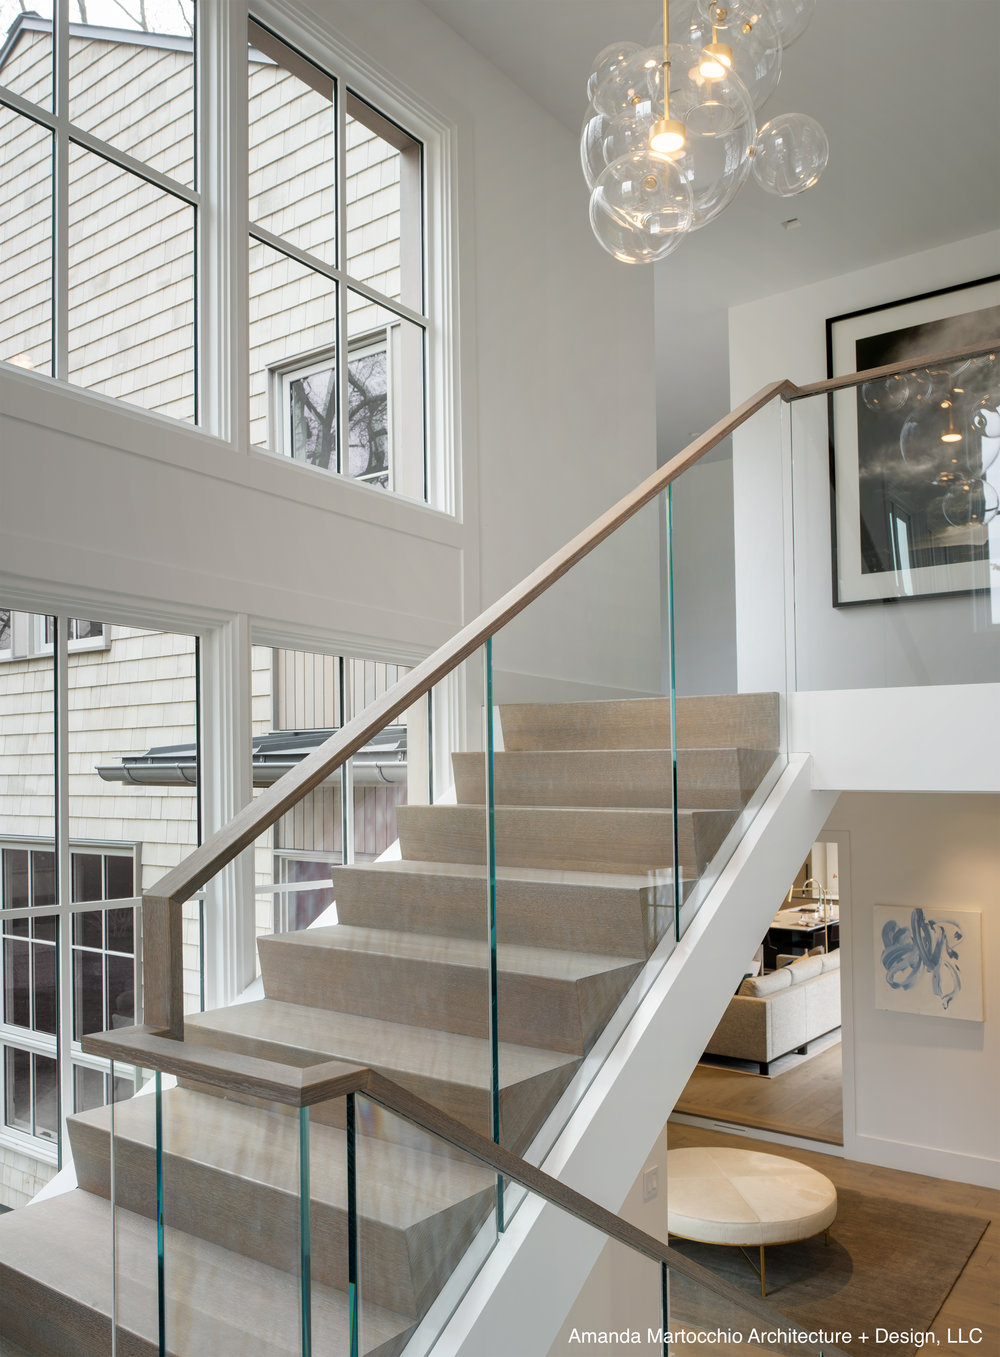 6-AMAD - Coves End Road - Interior Stair Landing.jpg